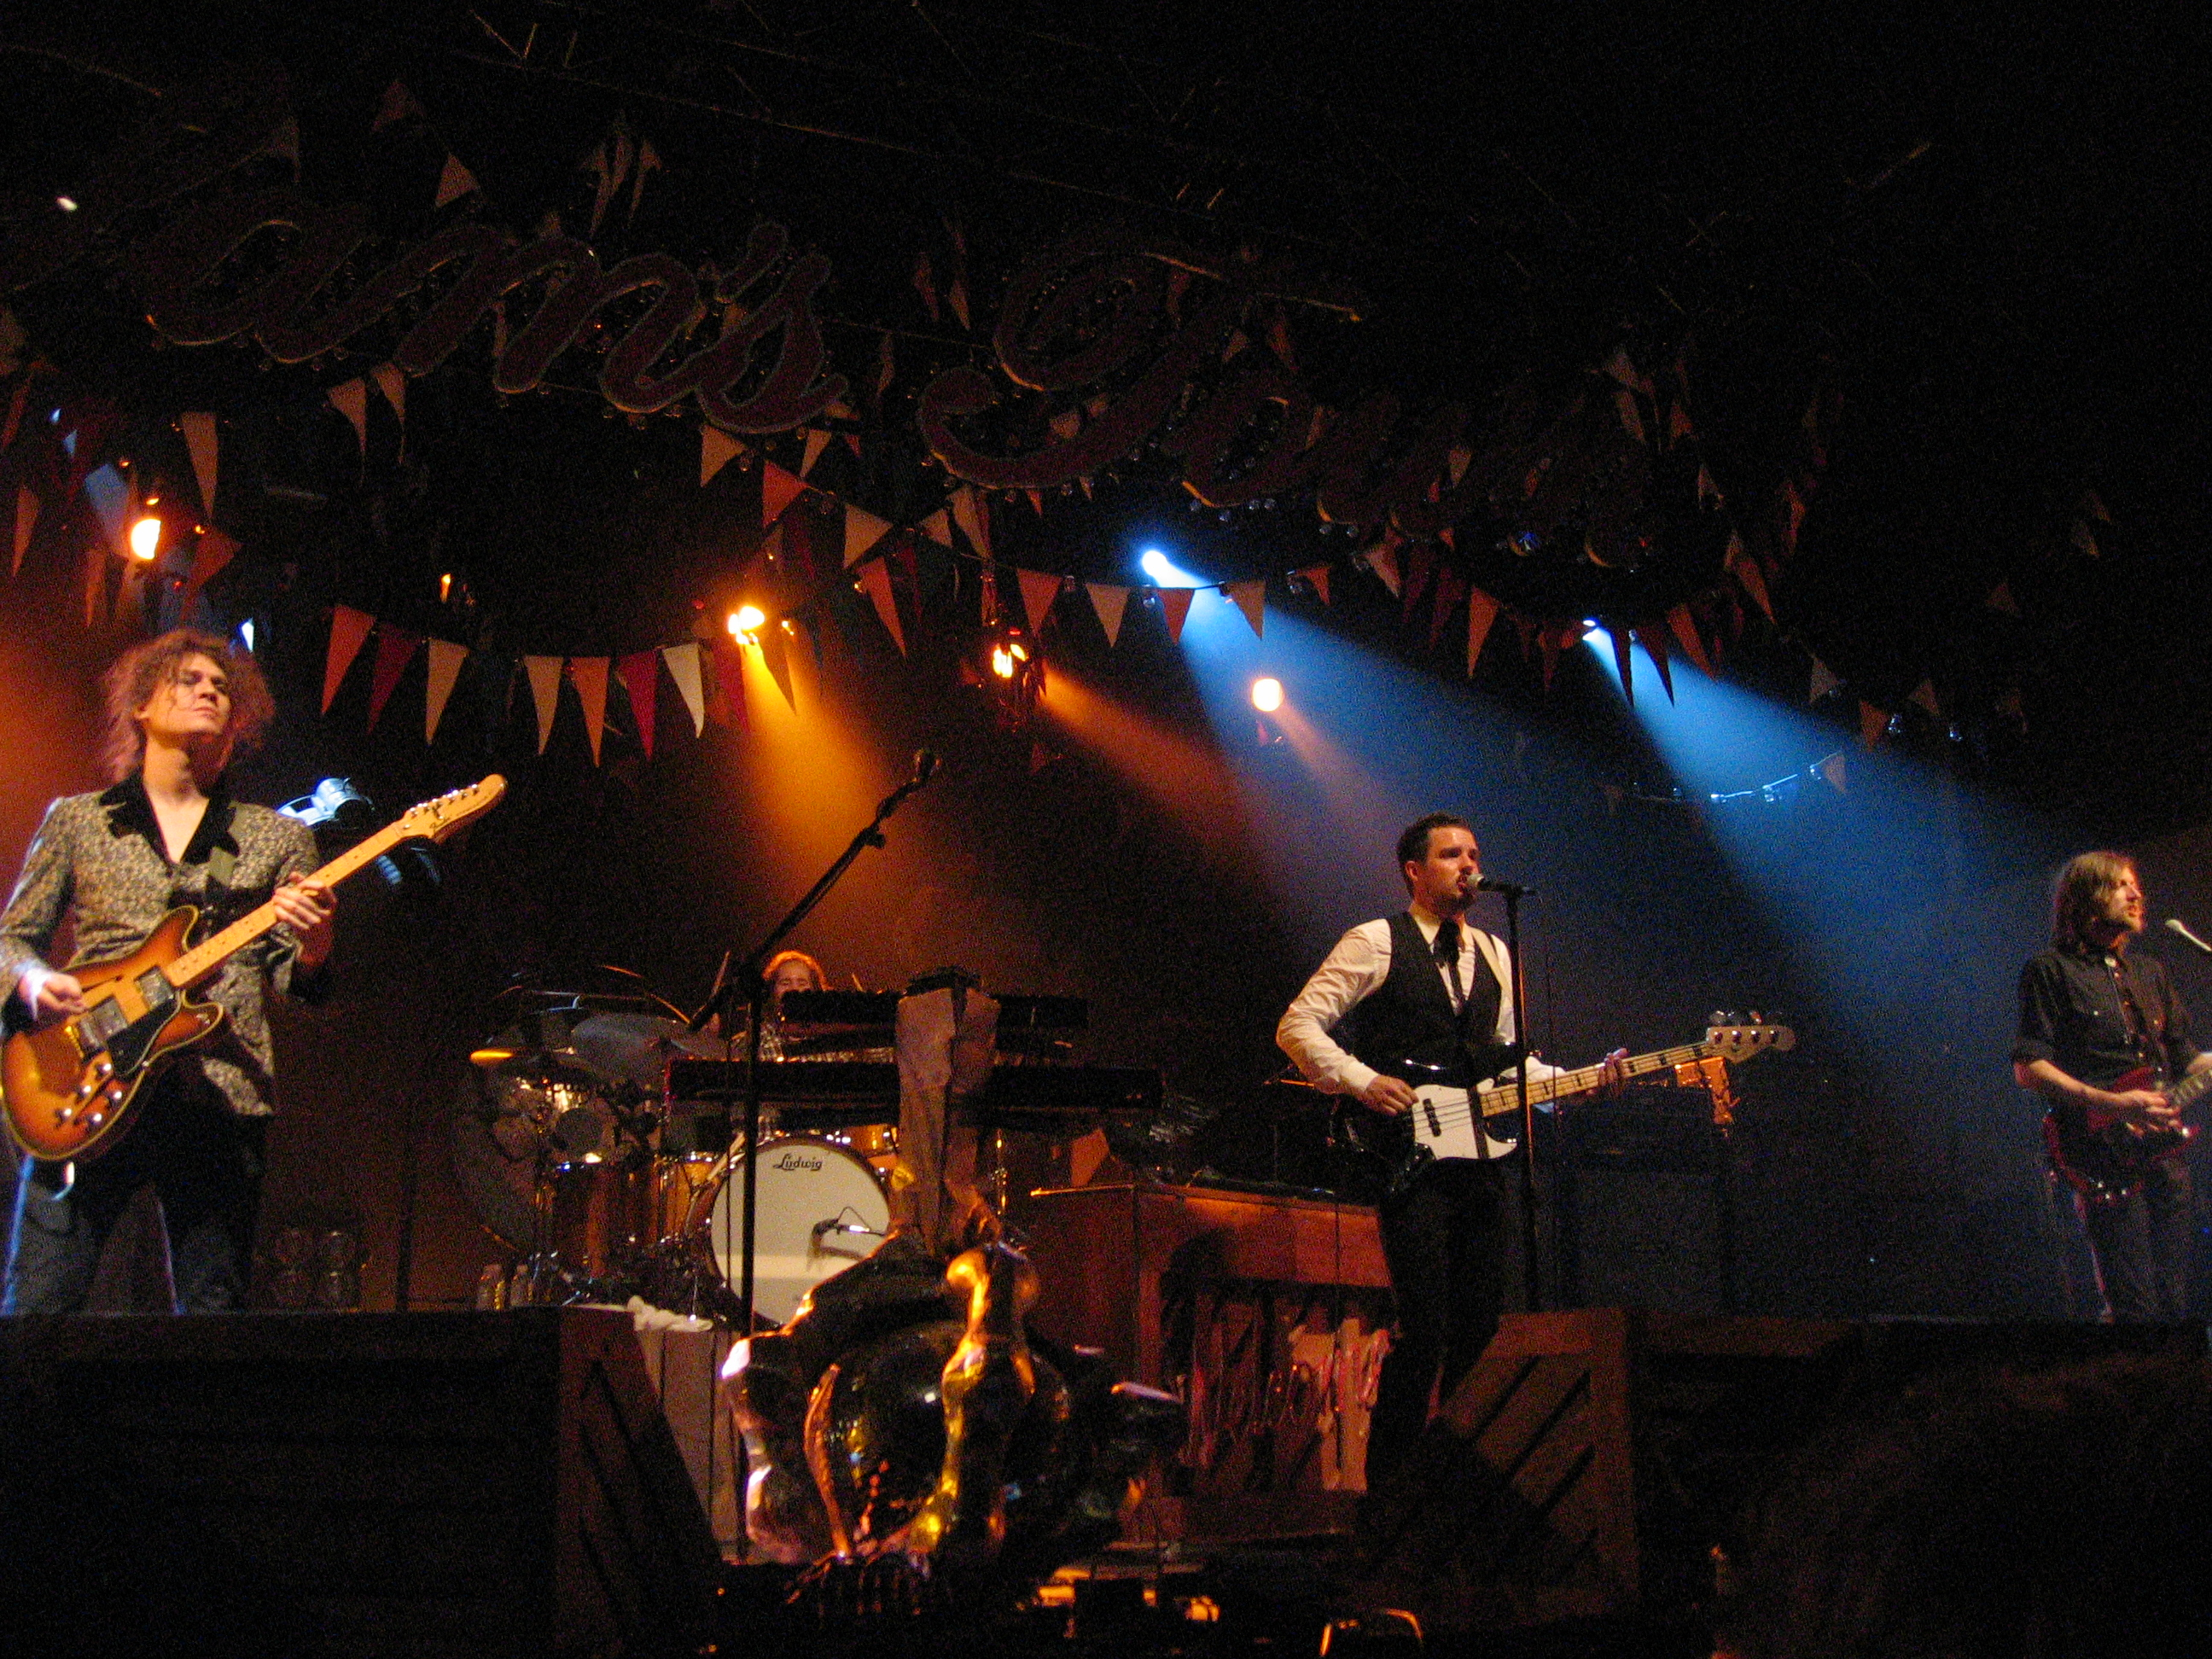 File:The Killers in concert.jpg - Wikimedia Commons